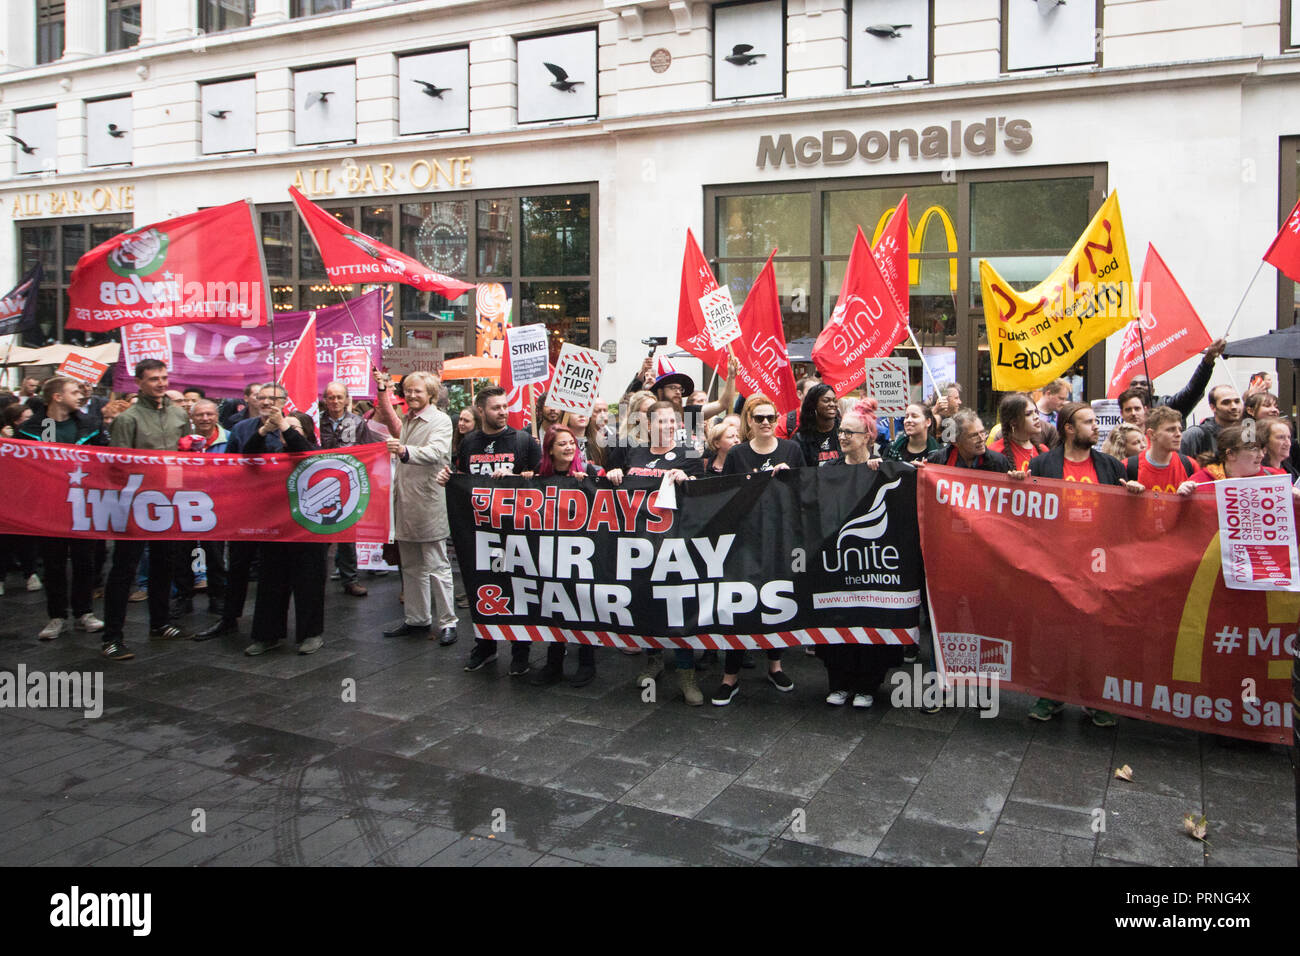 London UK 4th October 2018. Staff Workers from McDonald's, JD Wetherspoon and TGI Fridays and UberEats riders organized by Unite Union  took part in a strike in Leicester Square  to  campaign for higher wages and to be paid  £10 an hour and an end to Zero Hour contracts Credit: amer ghazzal/Alamy Live News - Stock Image